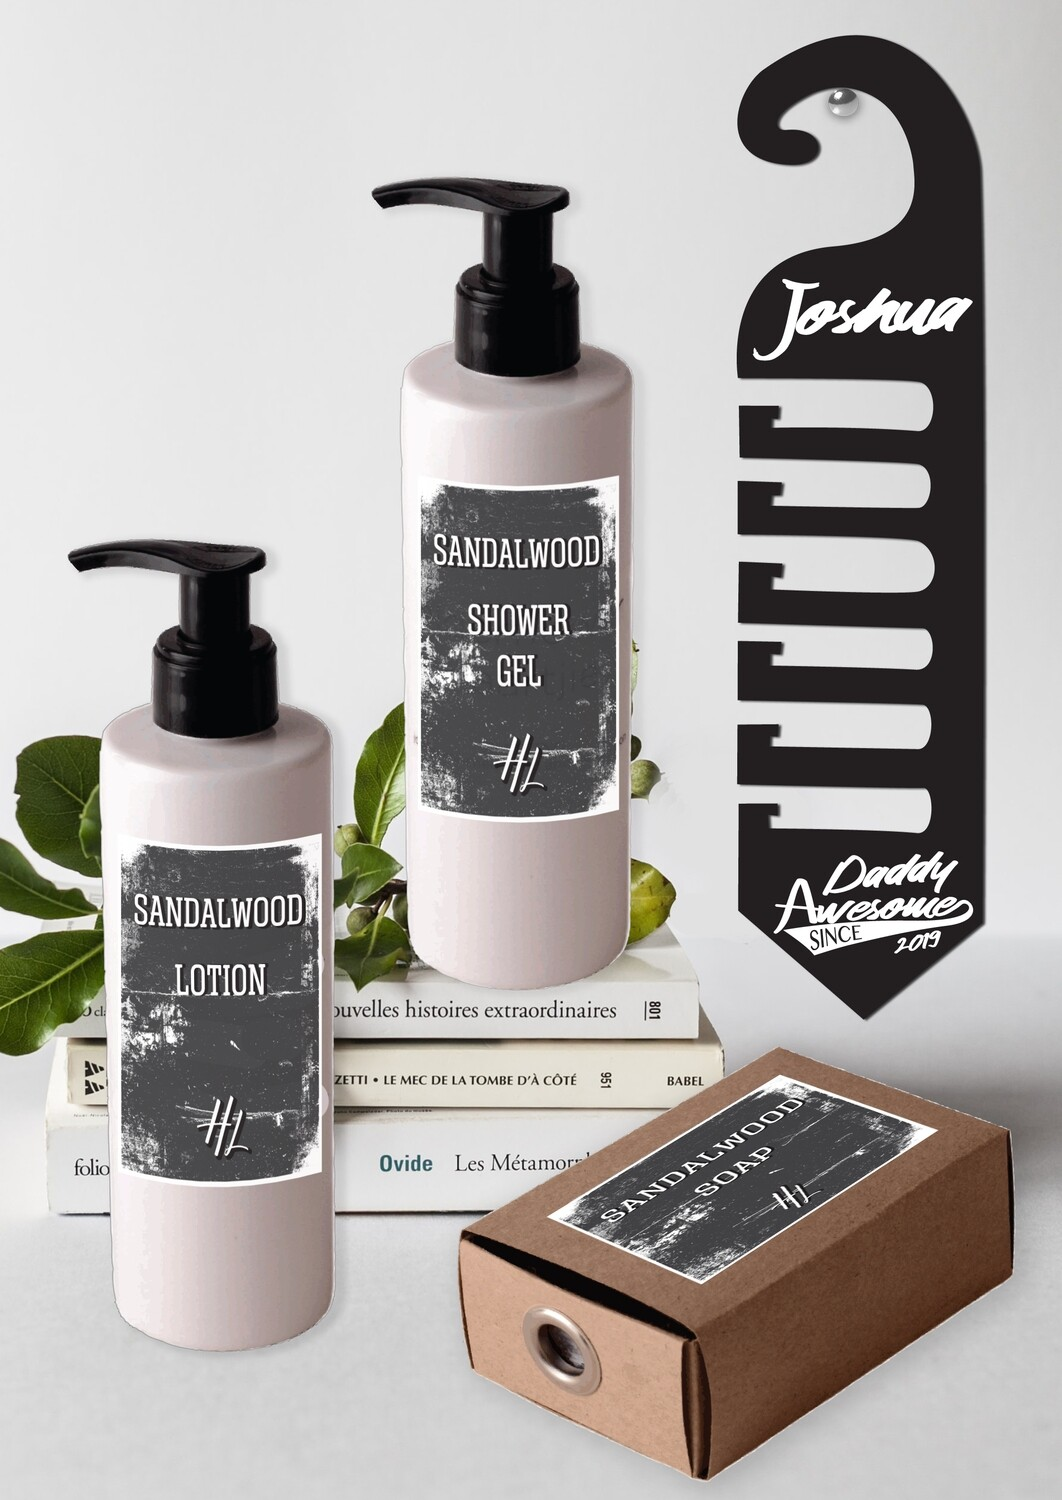 Personalized Daddy Awesome Tie Hanger & Body Care